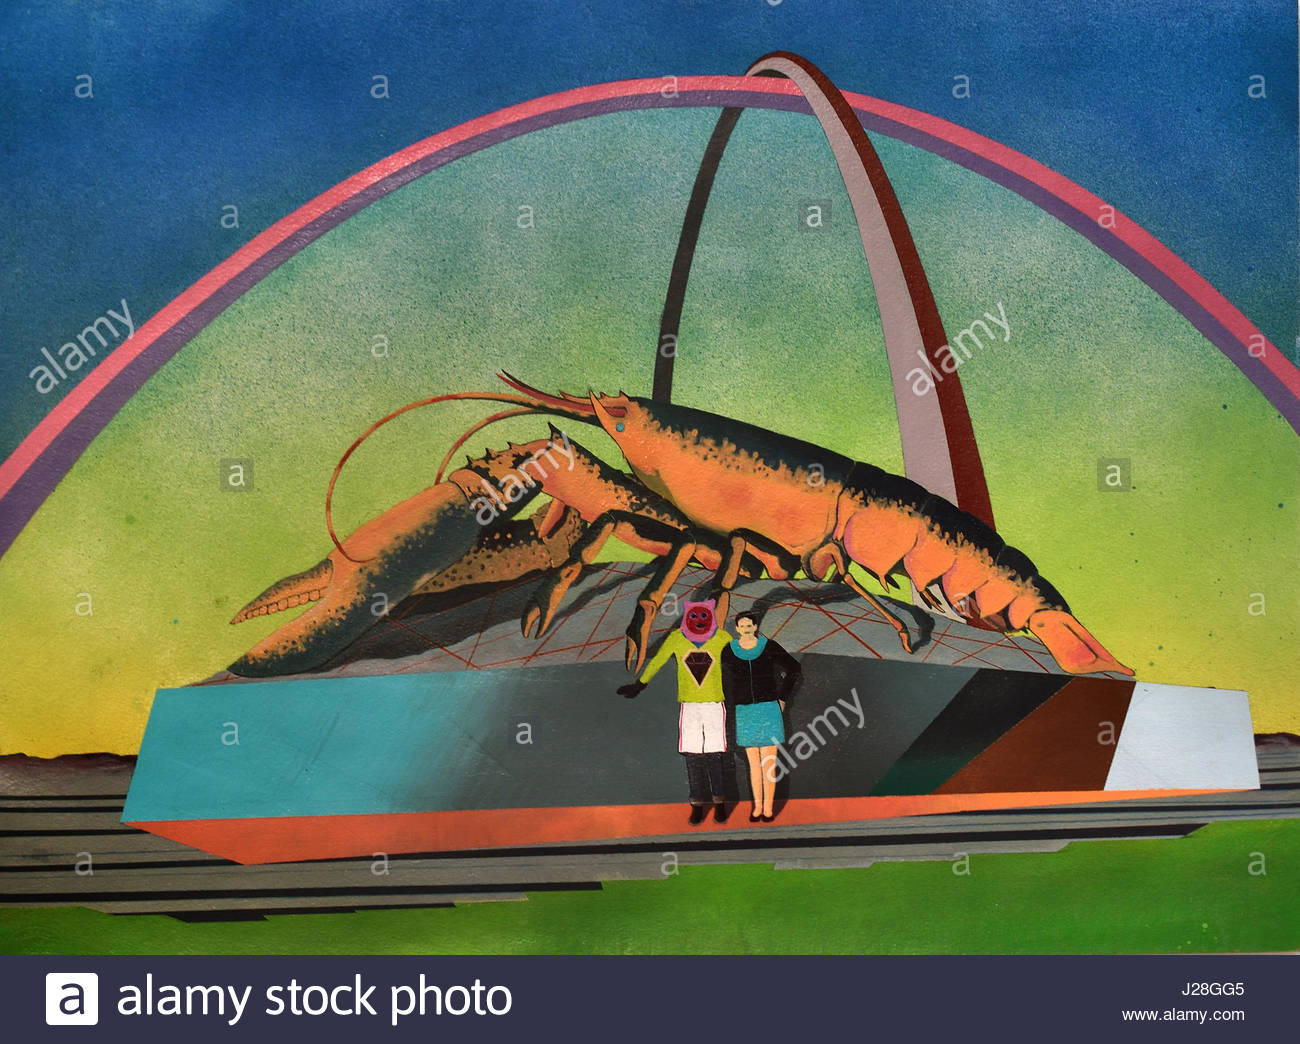 A recollection of past errors manifested as a crustacean 2013 by Basim Magdy 1977 Assiut, Egypt, Egyptian, lives - Stock Image